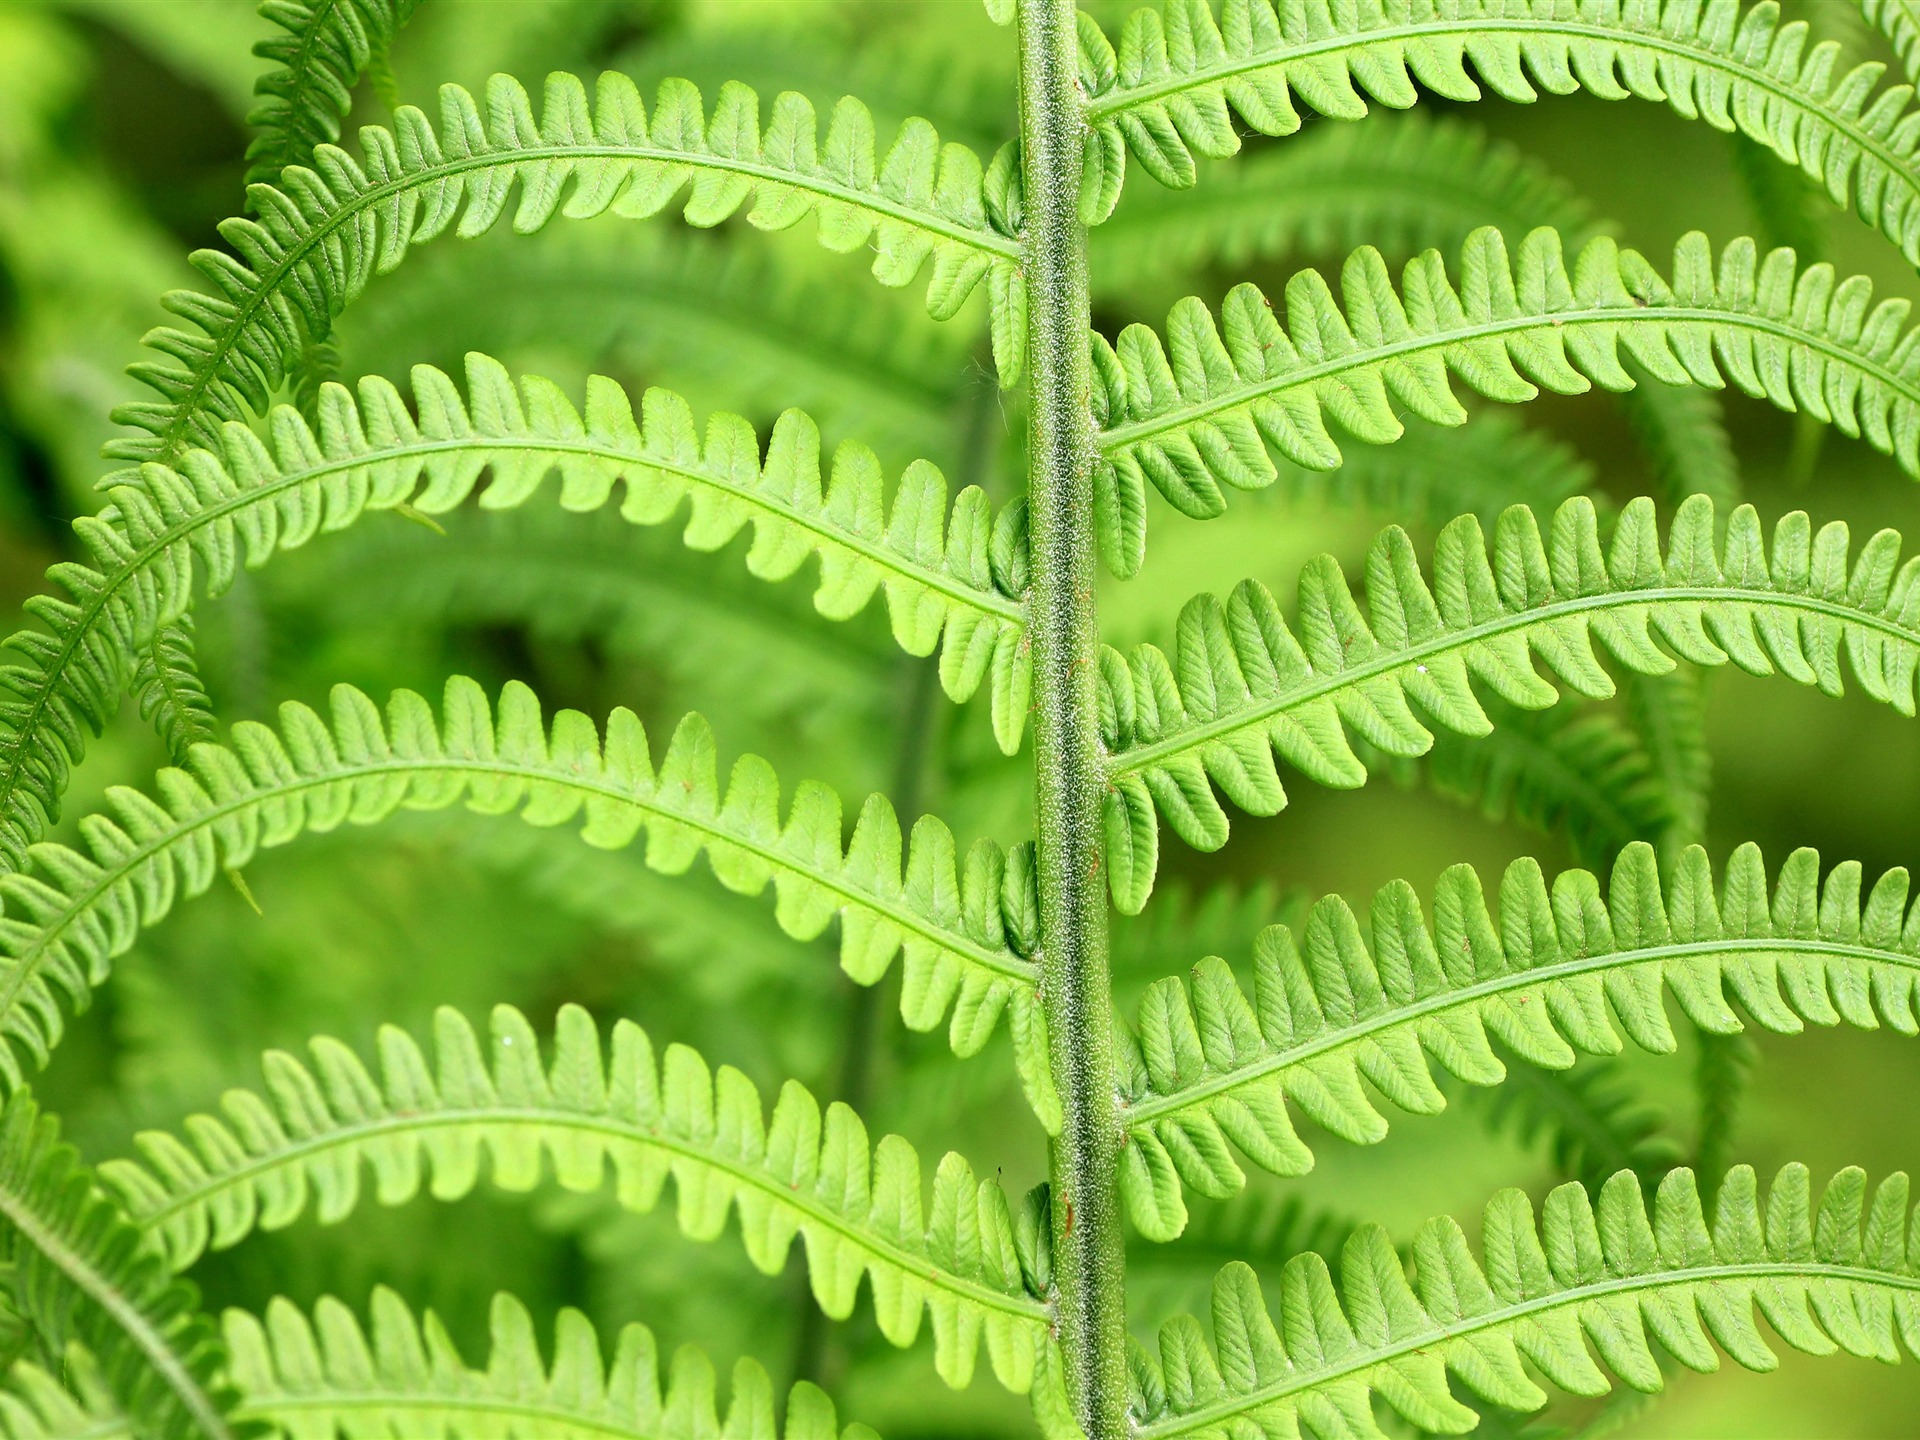 Spring forest green fern plant leaf - 1920x1440 wallpaper download